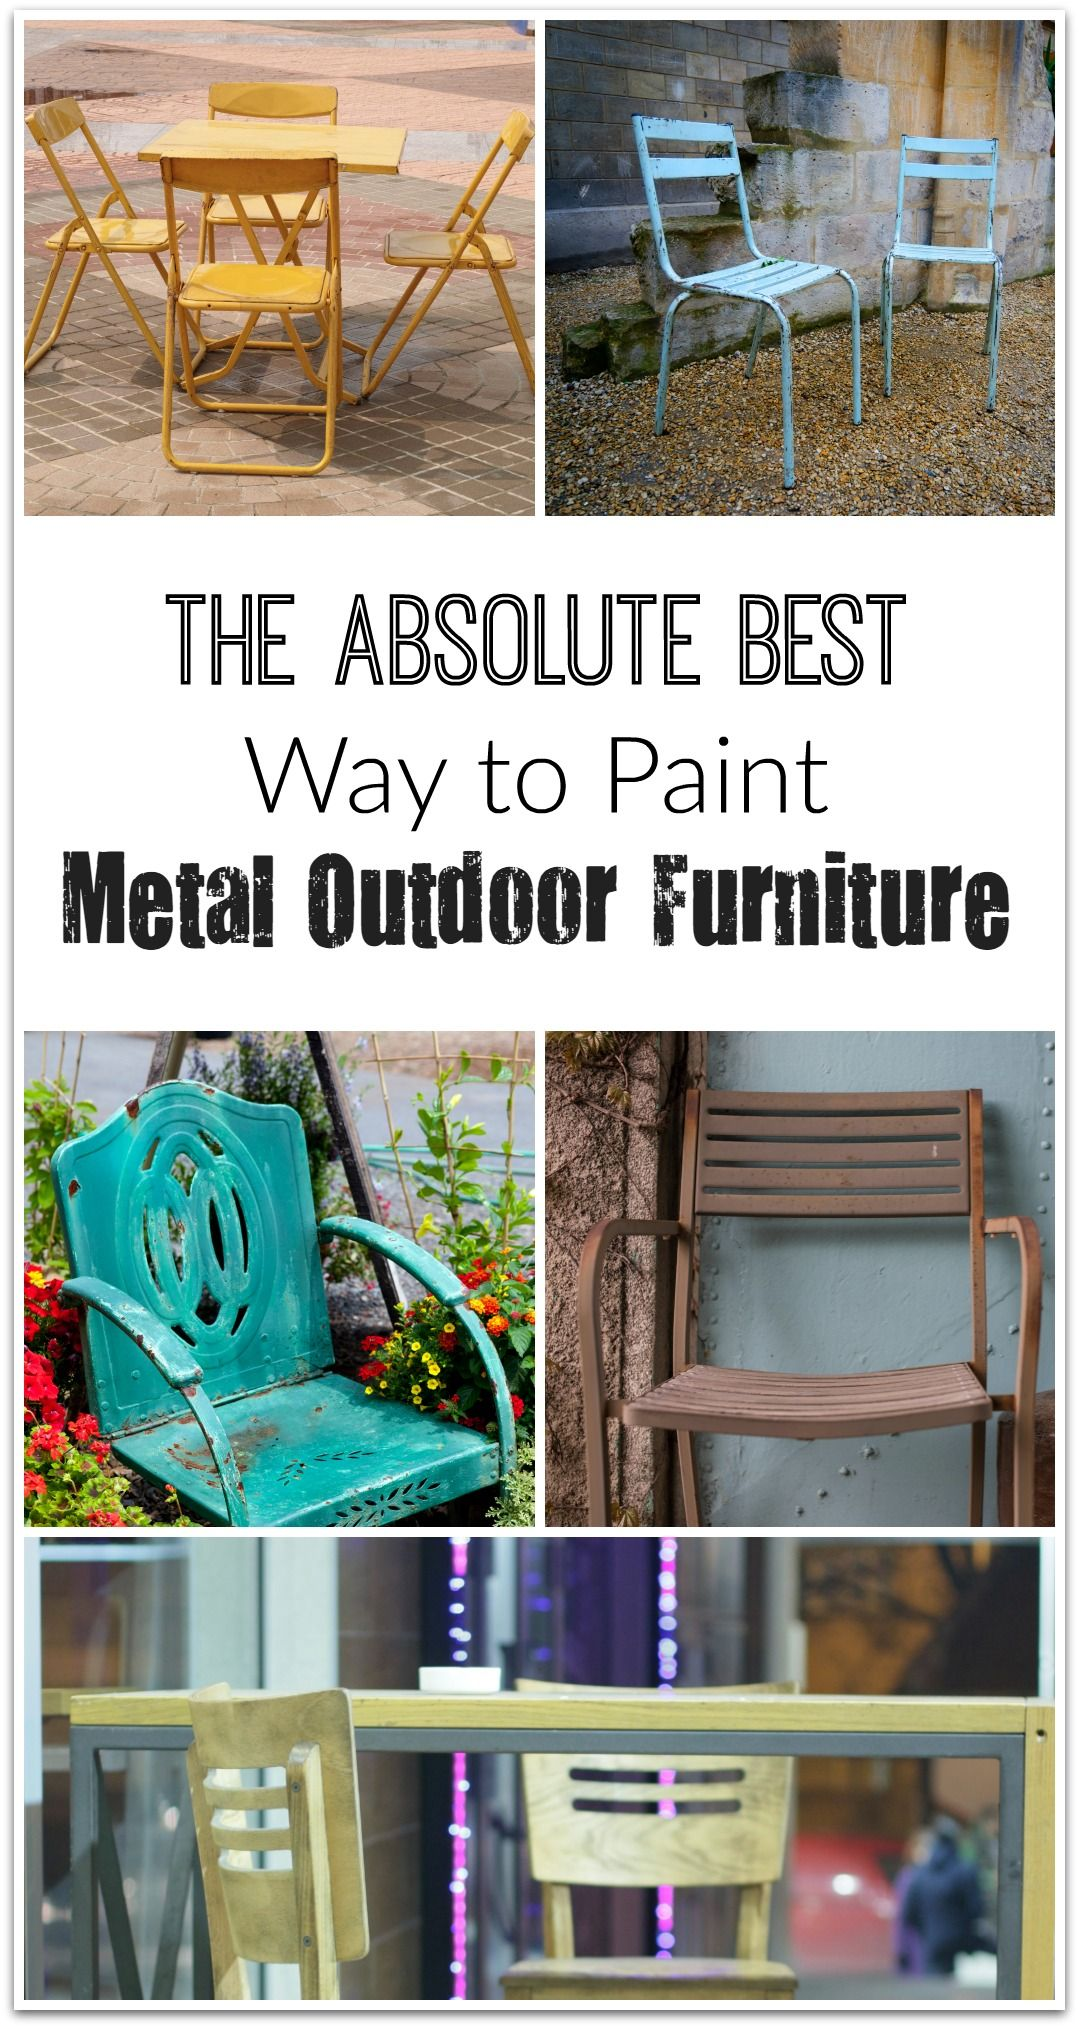 Groovy The Best Way To Paint Metal Furniture Decor Metallic Dailytribune Chair Design For Home Dailytribuneorg